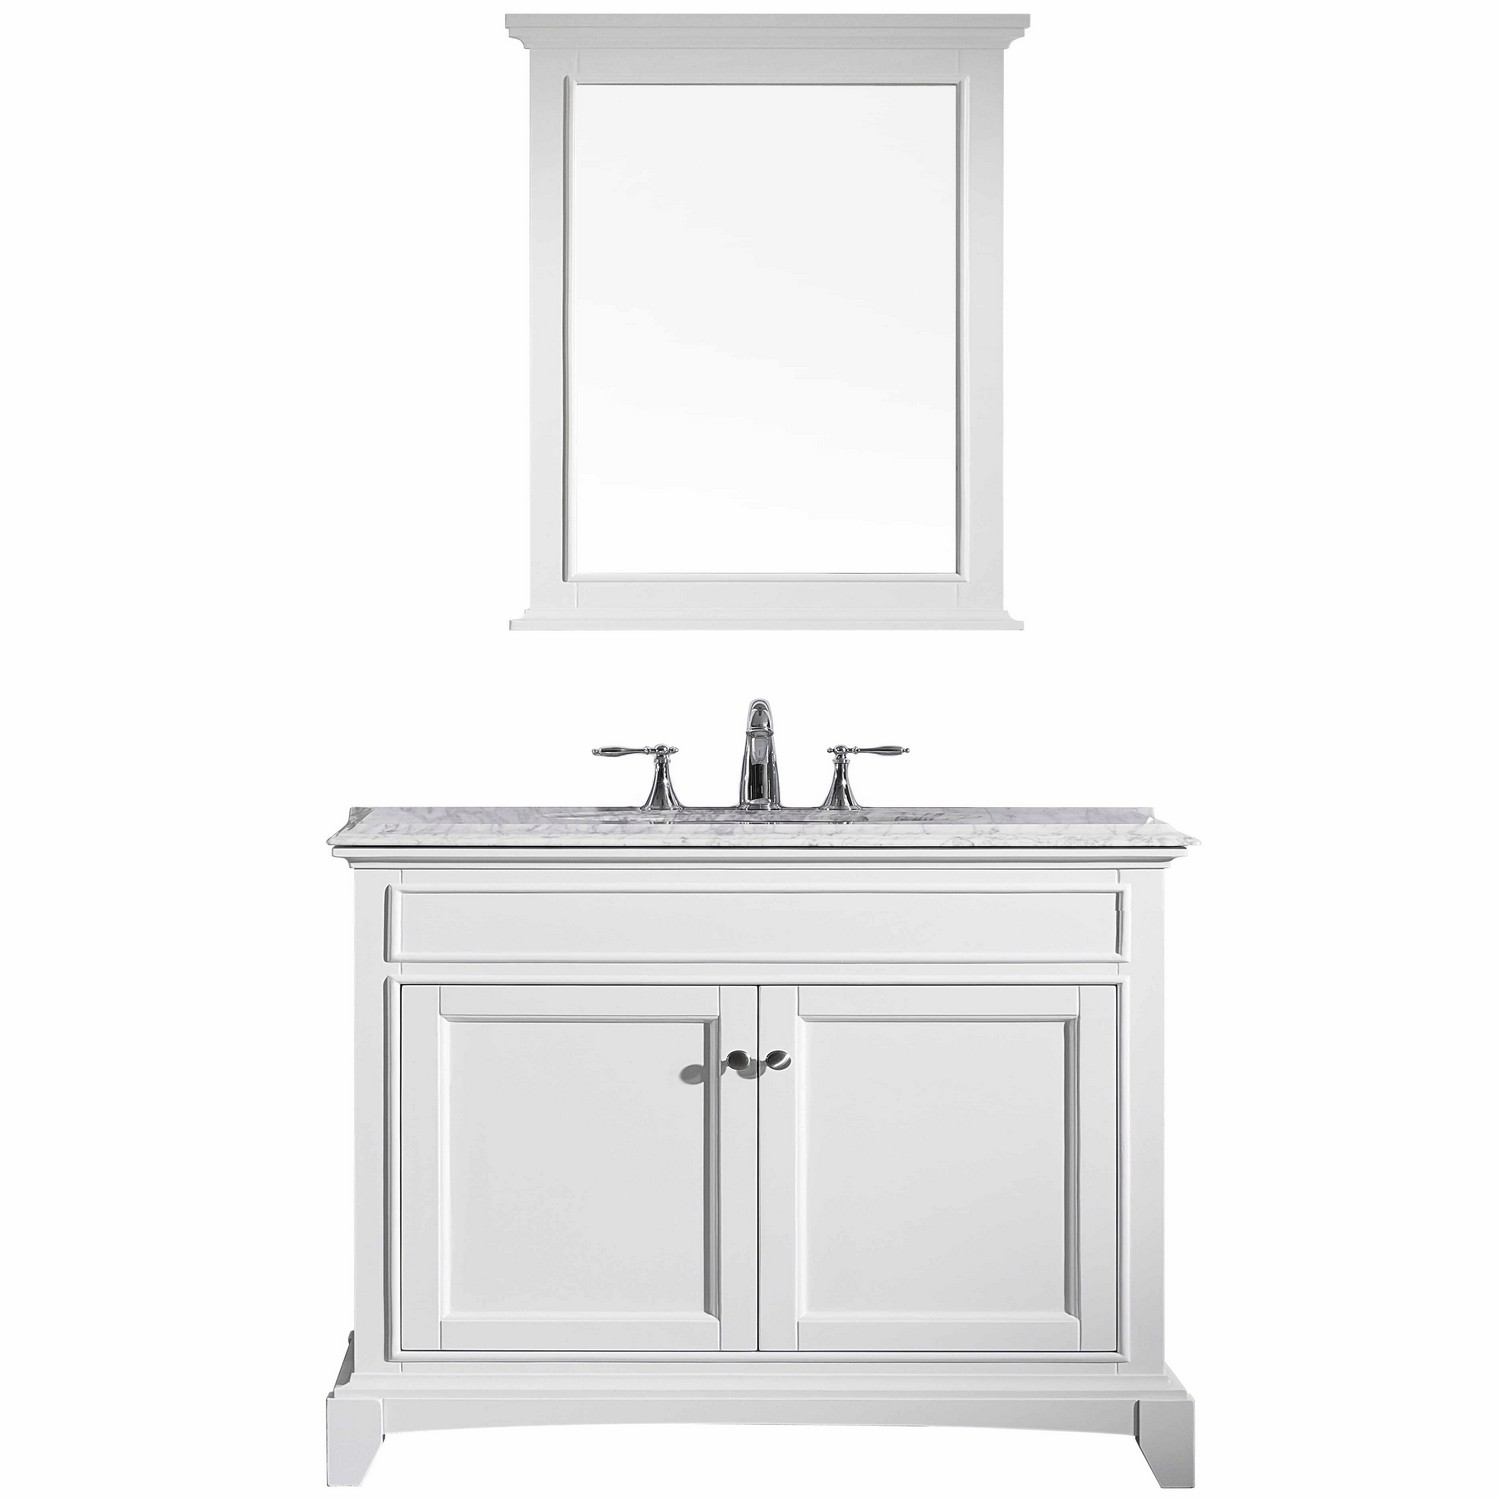 Eviva Elite Stamford 36″ White Solid Wood Bathroom Vanity Set with Double OG White Carrera Marble Top & White Undermount Porcelain Sink